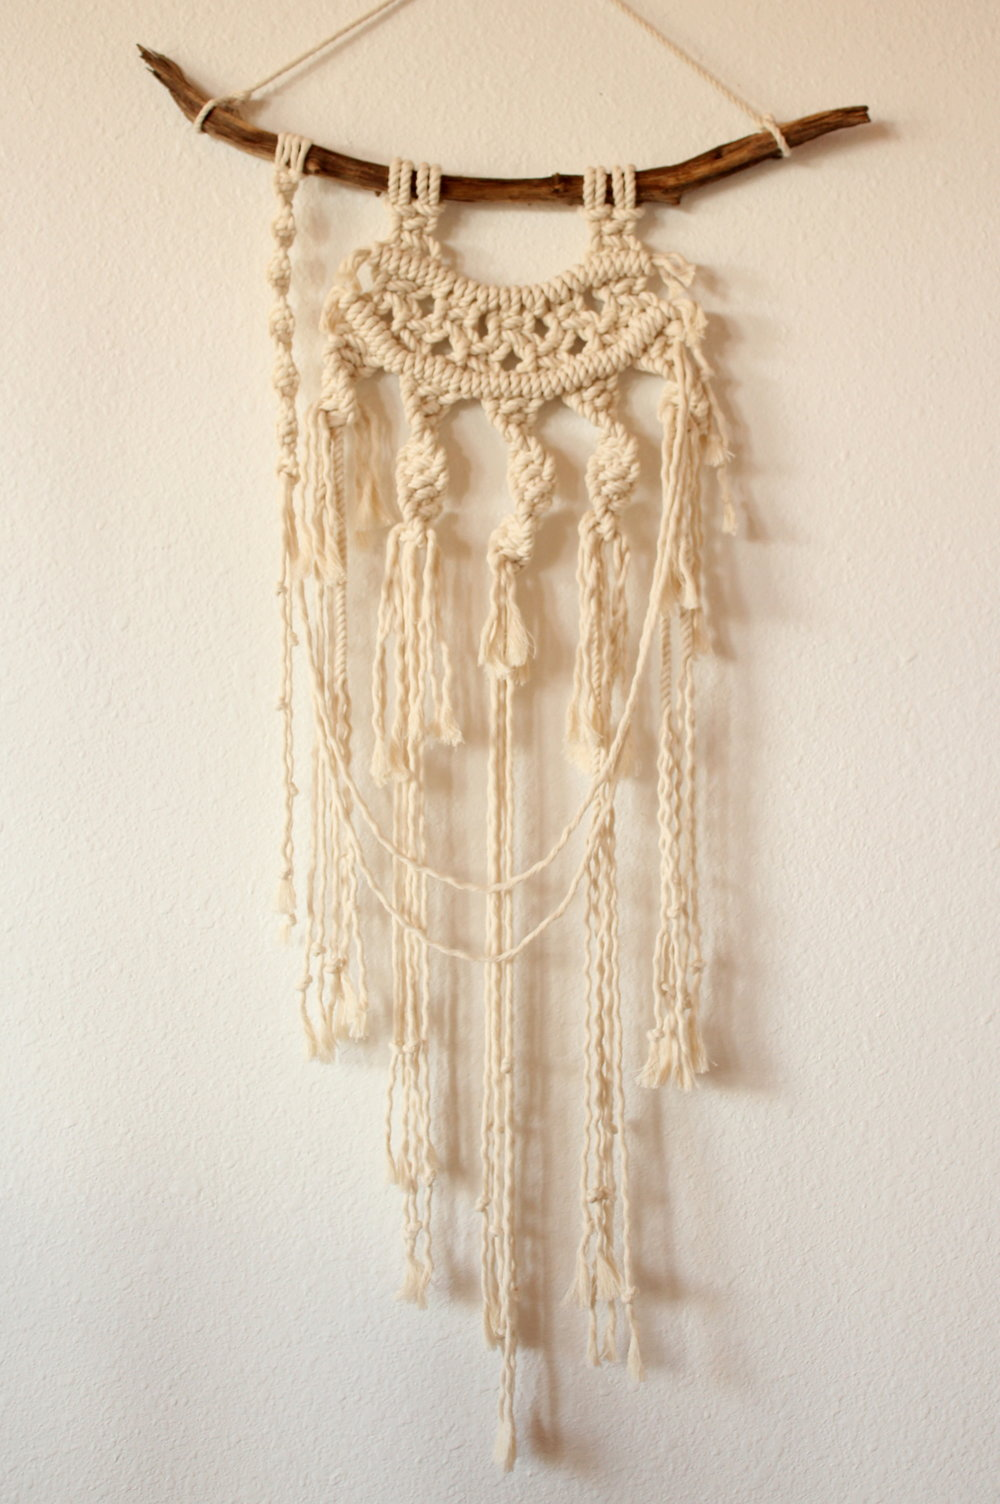 BURST INTO BLOSSOM MACRAME WALL HANGING